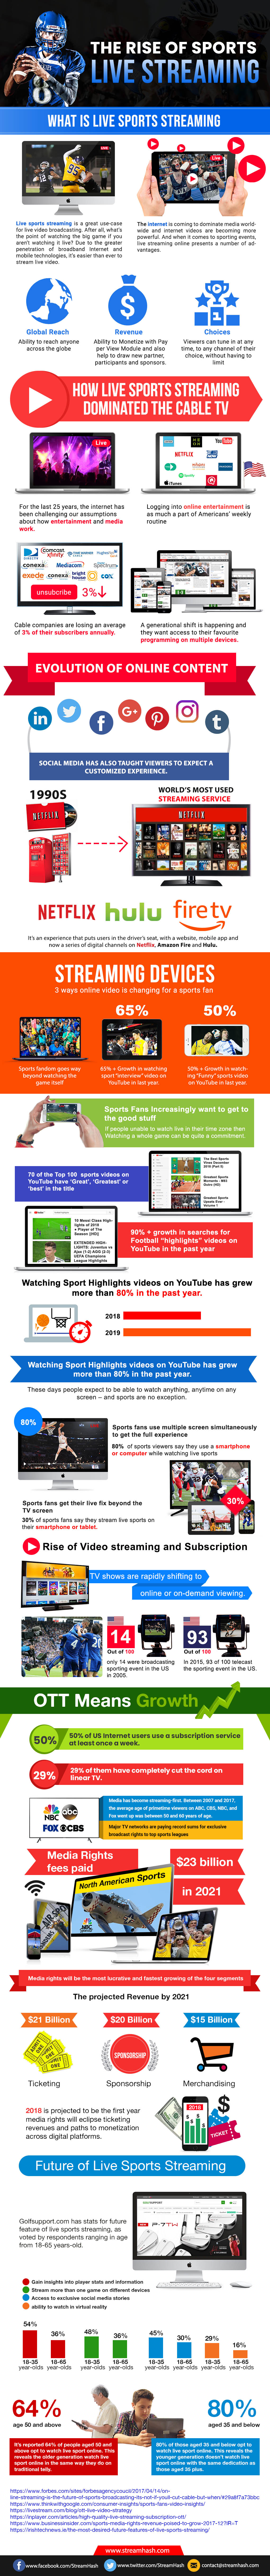 The-raise-of-live-streaming-Streamhash-infographics